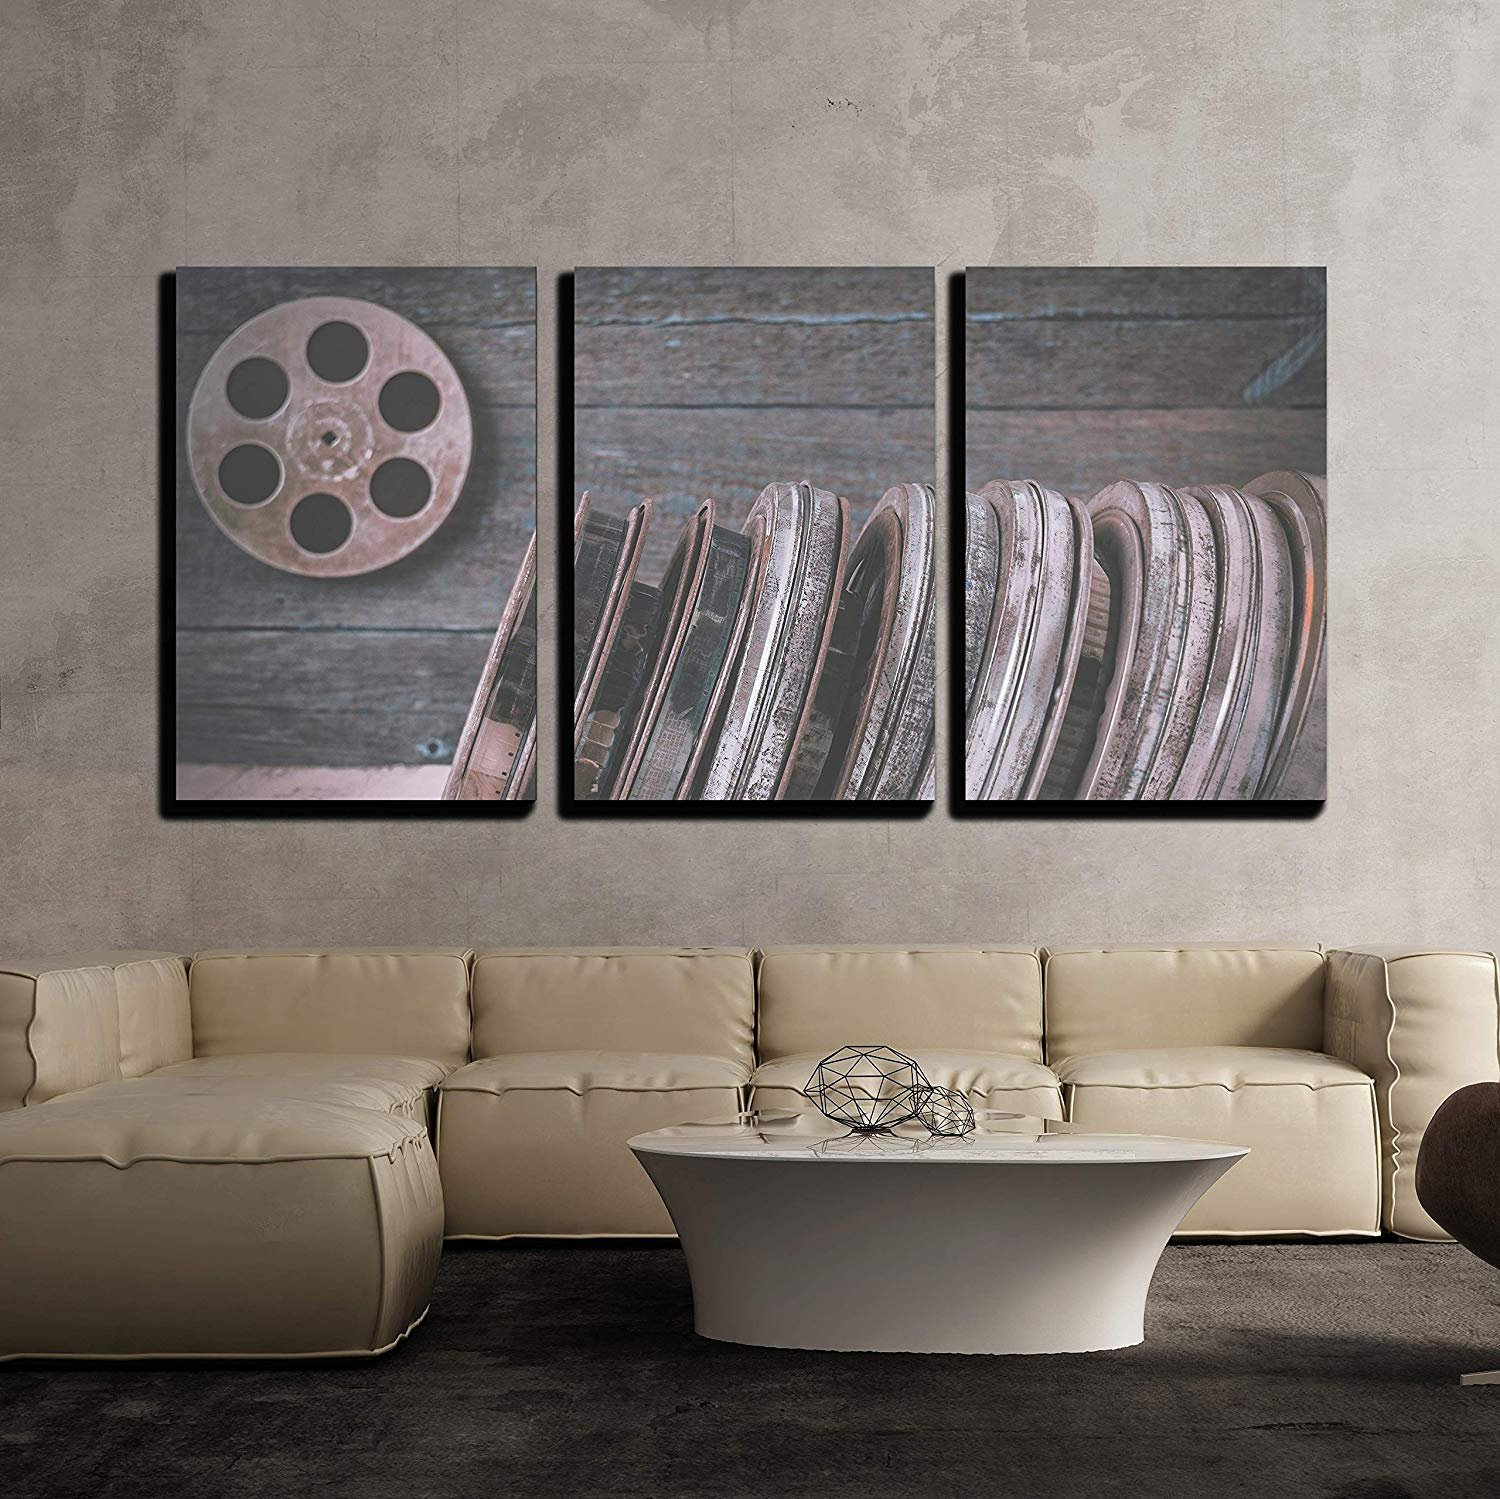 BABE MAPS 16''x24''x3 Panels Wall Decor Artwork Ready Hang Paintings Stack of Reels of Old Movies is on a Wooden Shelf Painting on Canvas Home Decorations